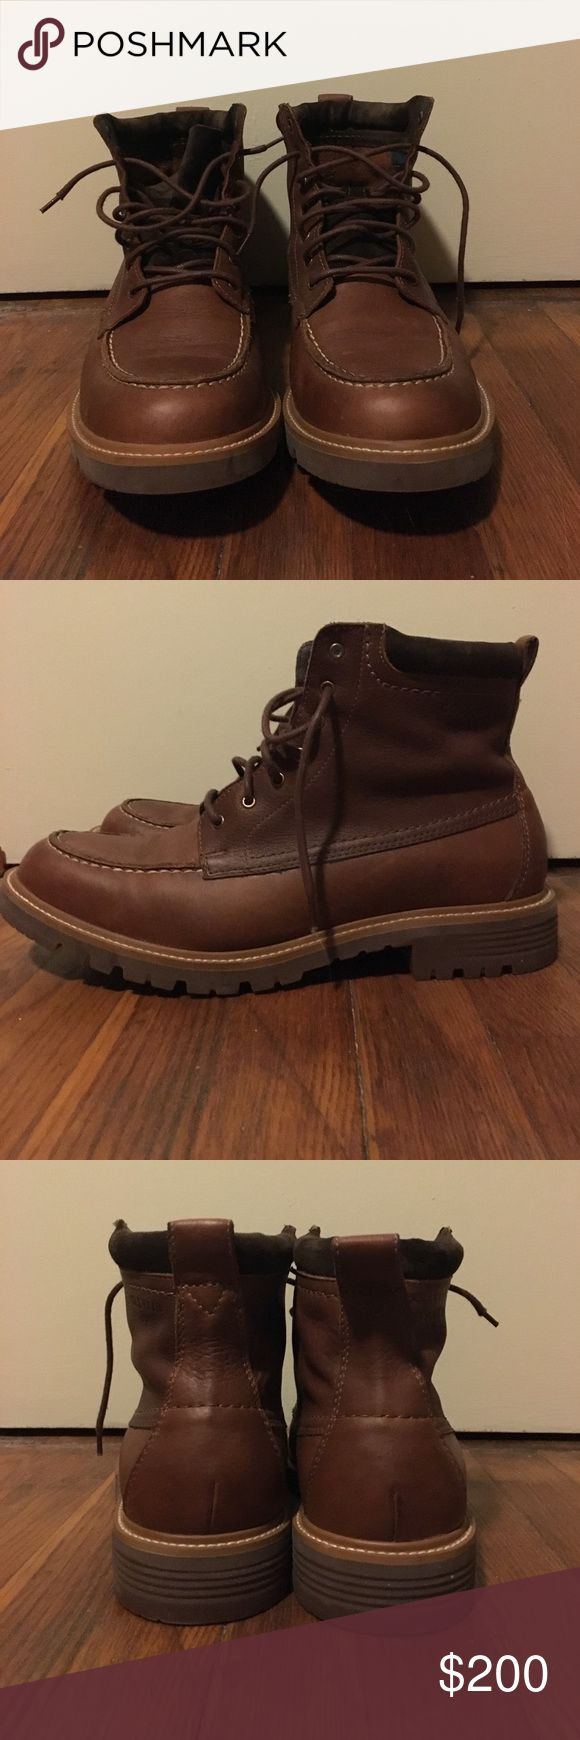 FINAL SALE!!!! Cole Haan men's boots Brown Cole Haan boots for men. Only worn once! Looks BRAND NEW! Water proof! GREAT CONDITION! Cole Haan Shoes Boots